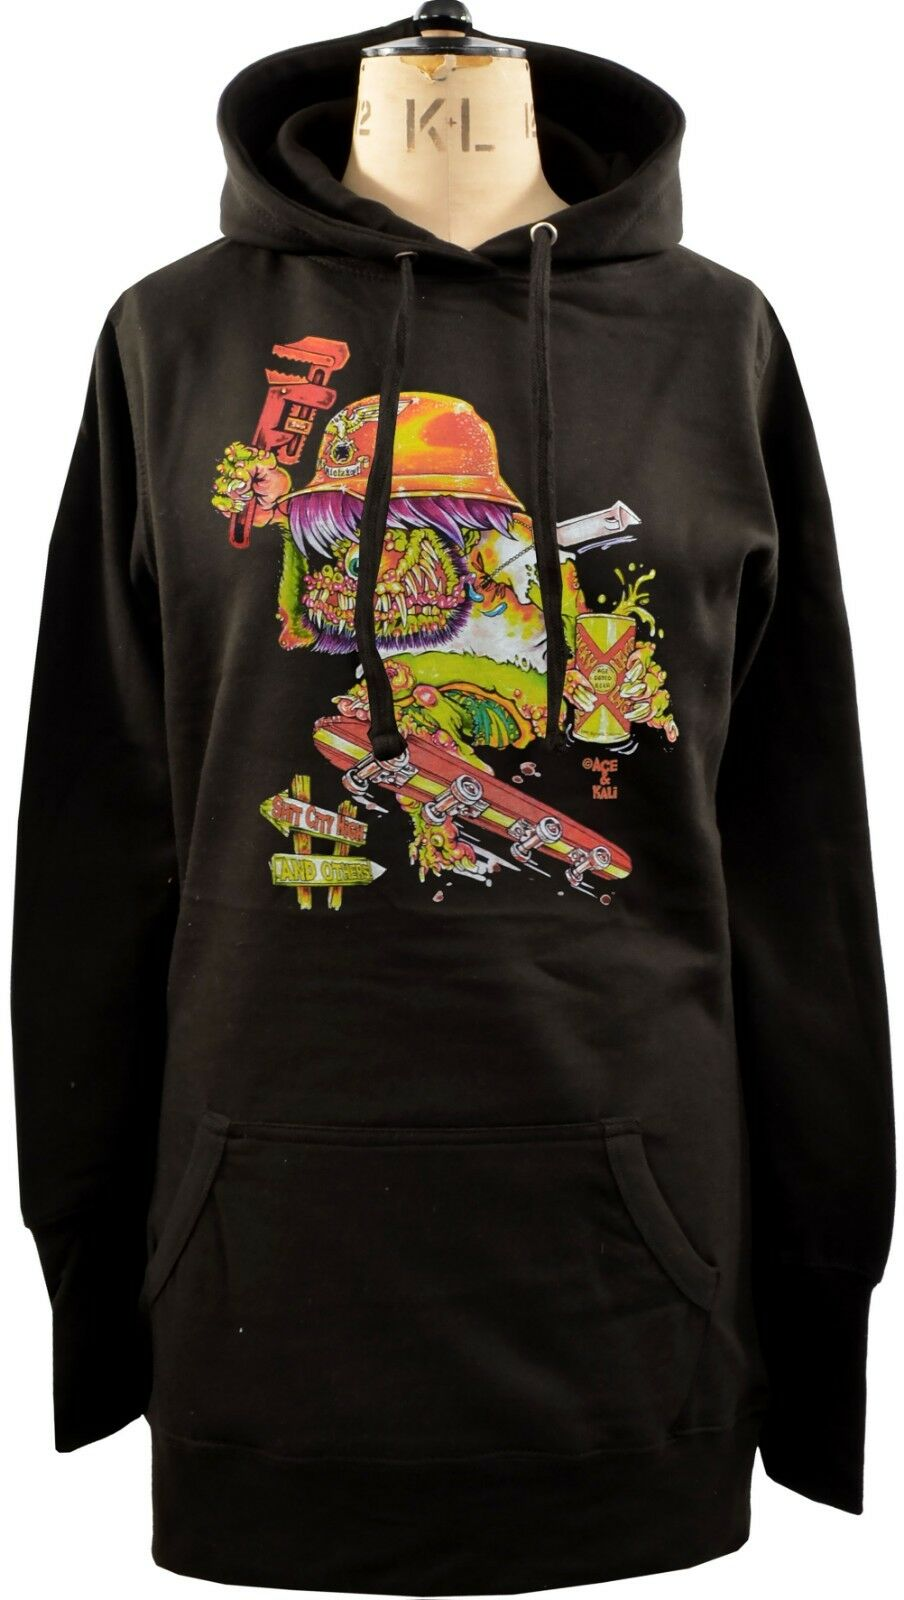 WOMENS HOODIE DRESS JOHNNY ACE SKATEBOARD FINK ED ROTH MONSTER 80s CUTURE S-XL